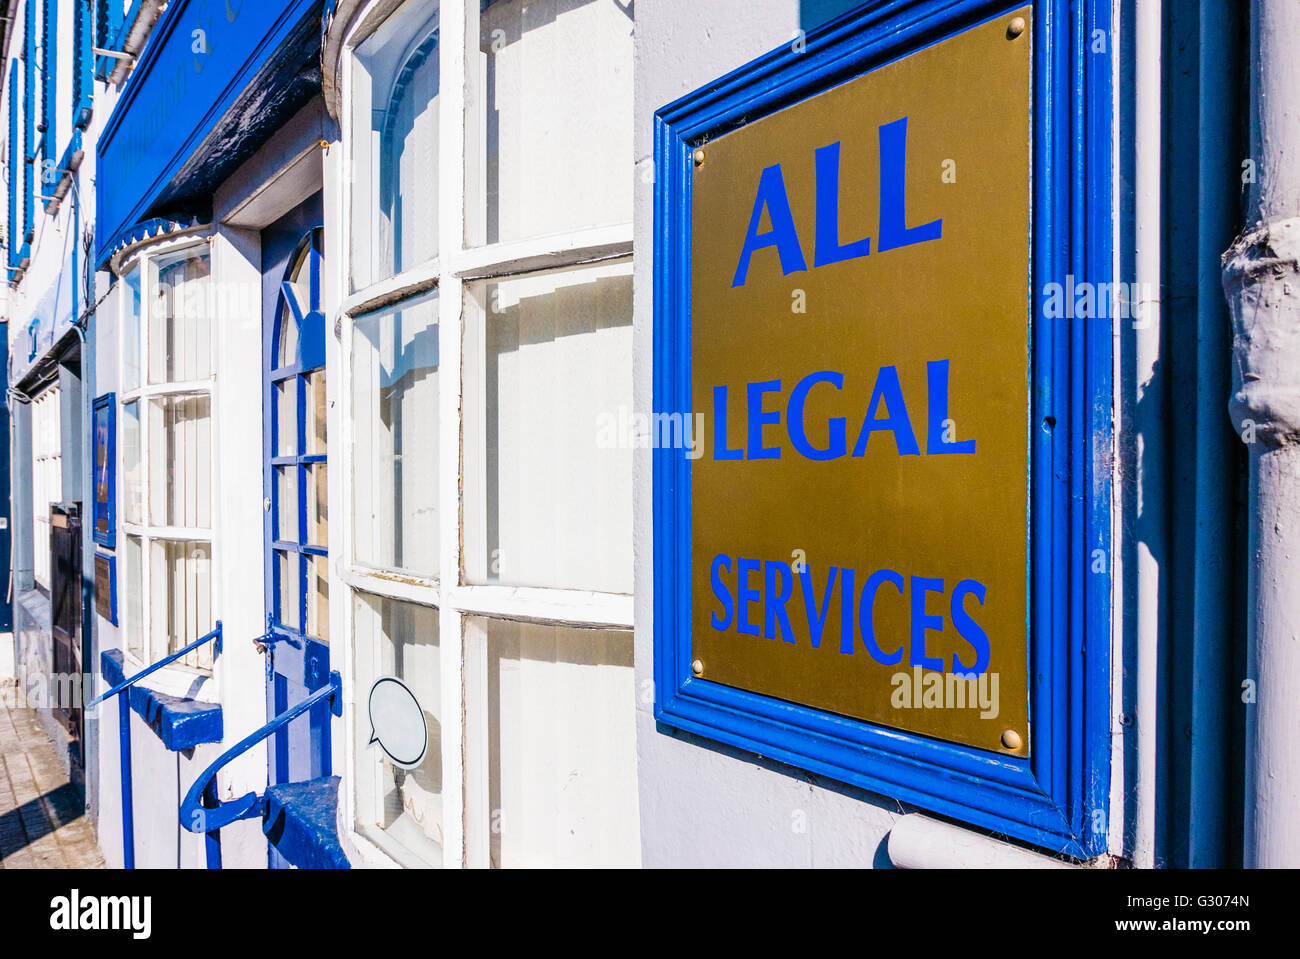 Sign outside a solicitor's office advertising 'All Legal Services'. - Stock Image